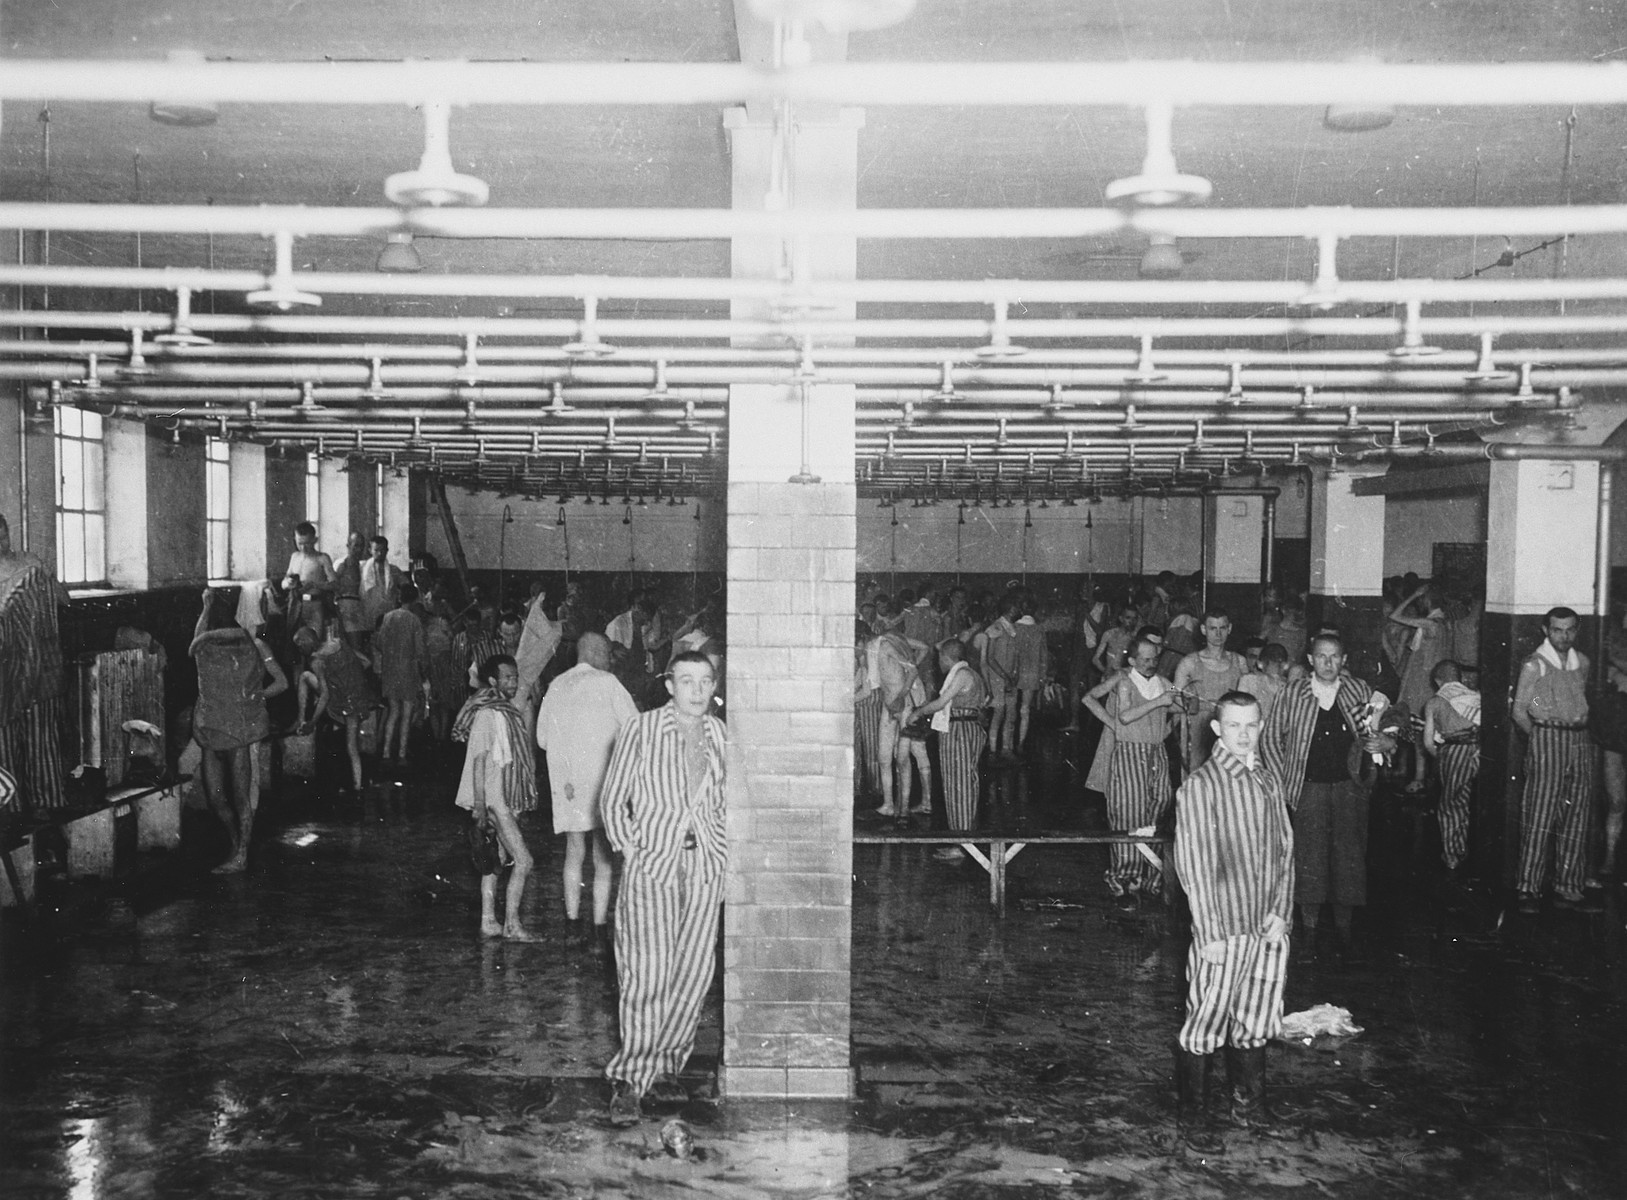 Survivors congregate in the Dachau shower barracks after liberation.